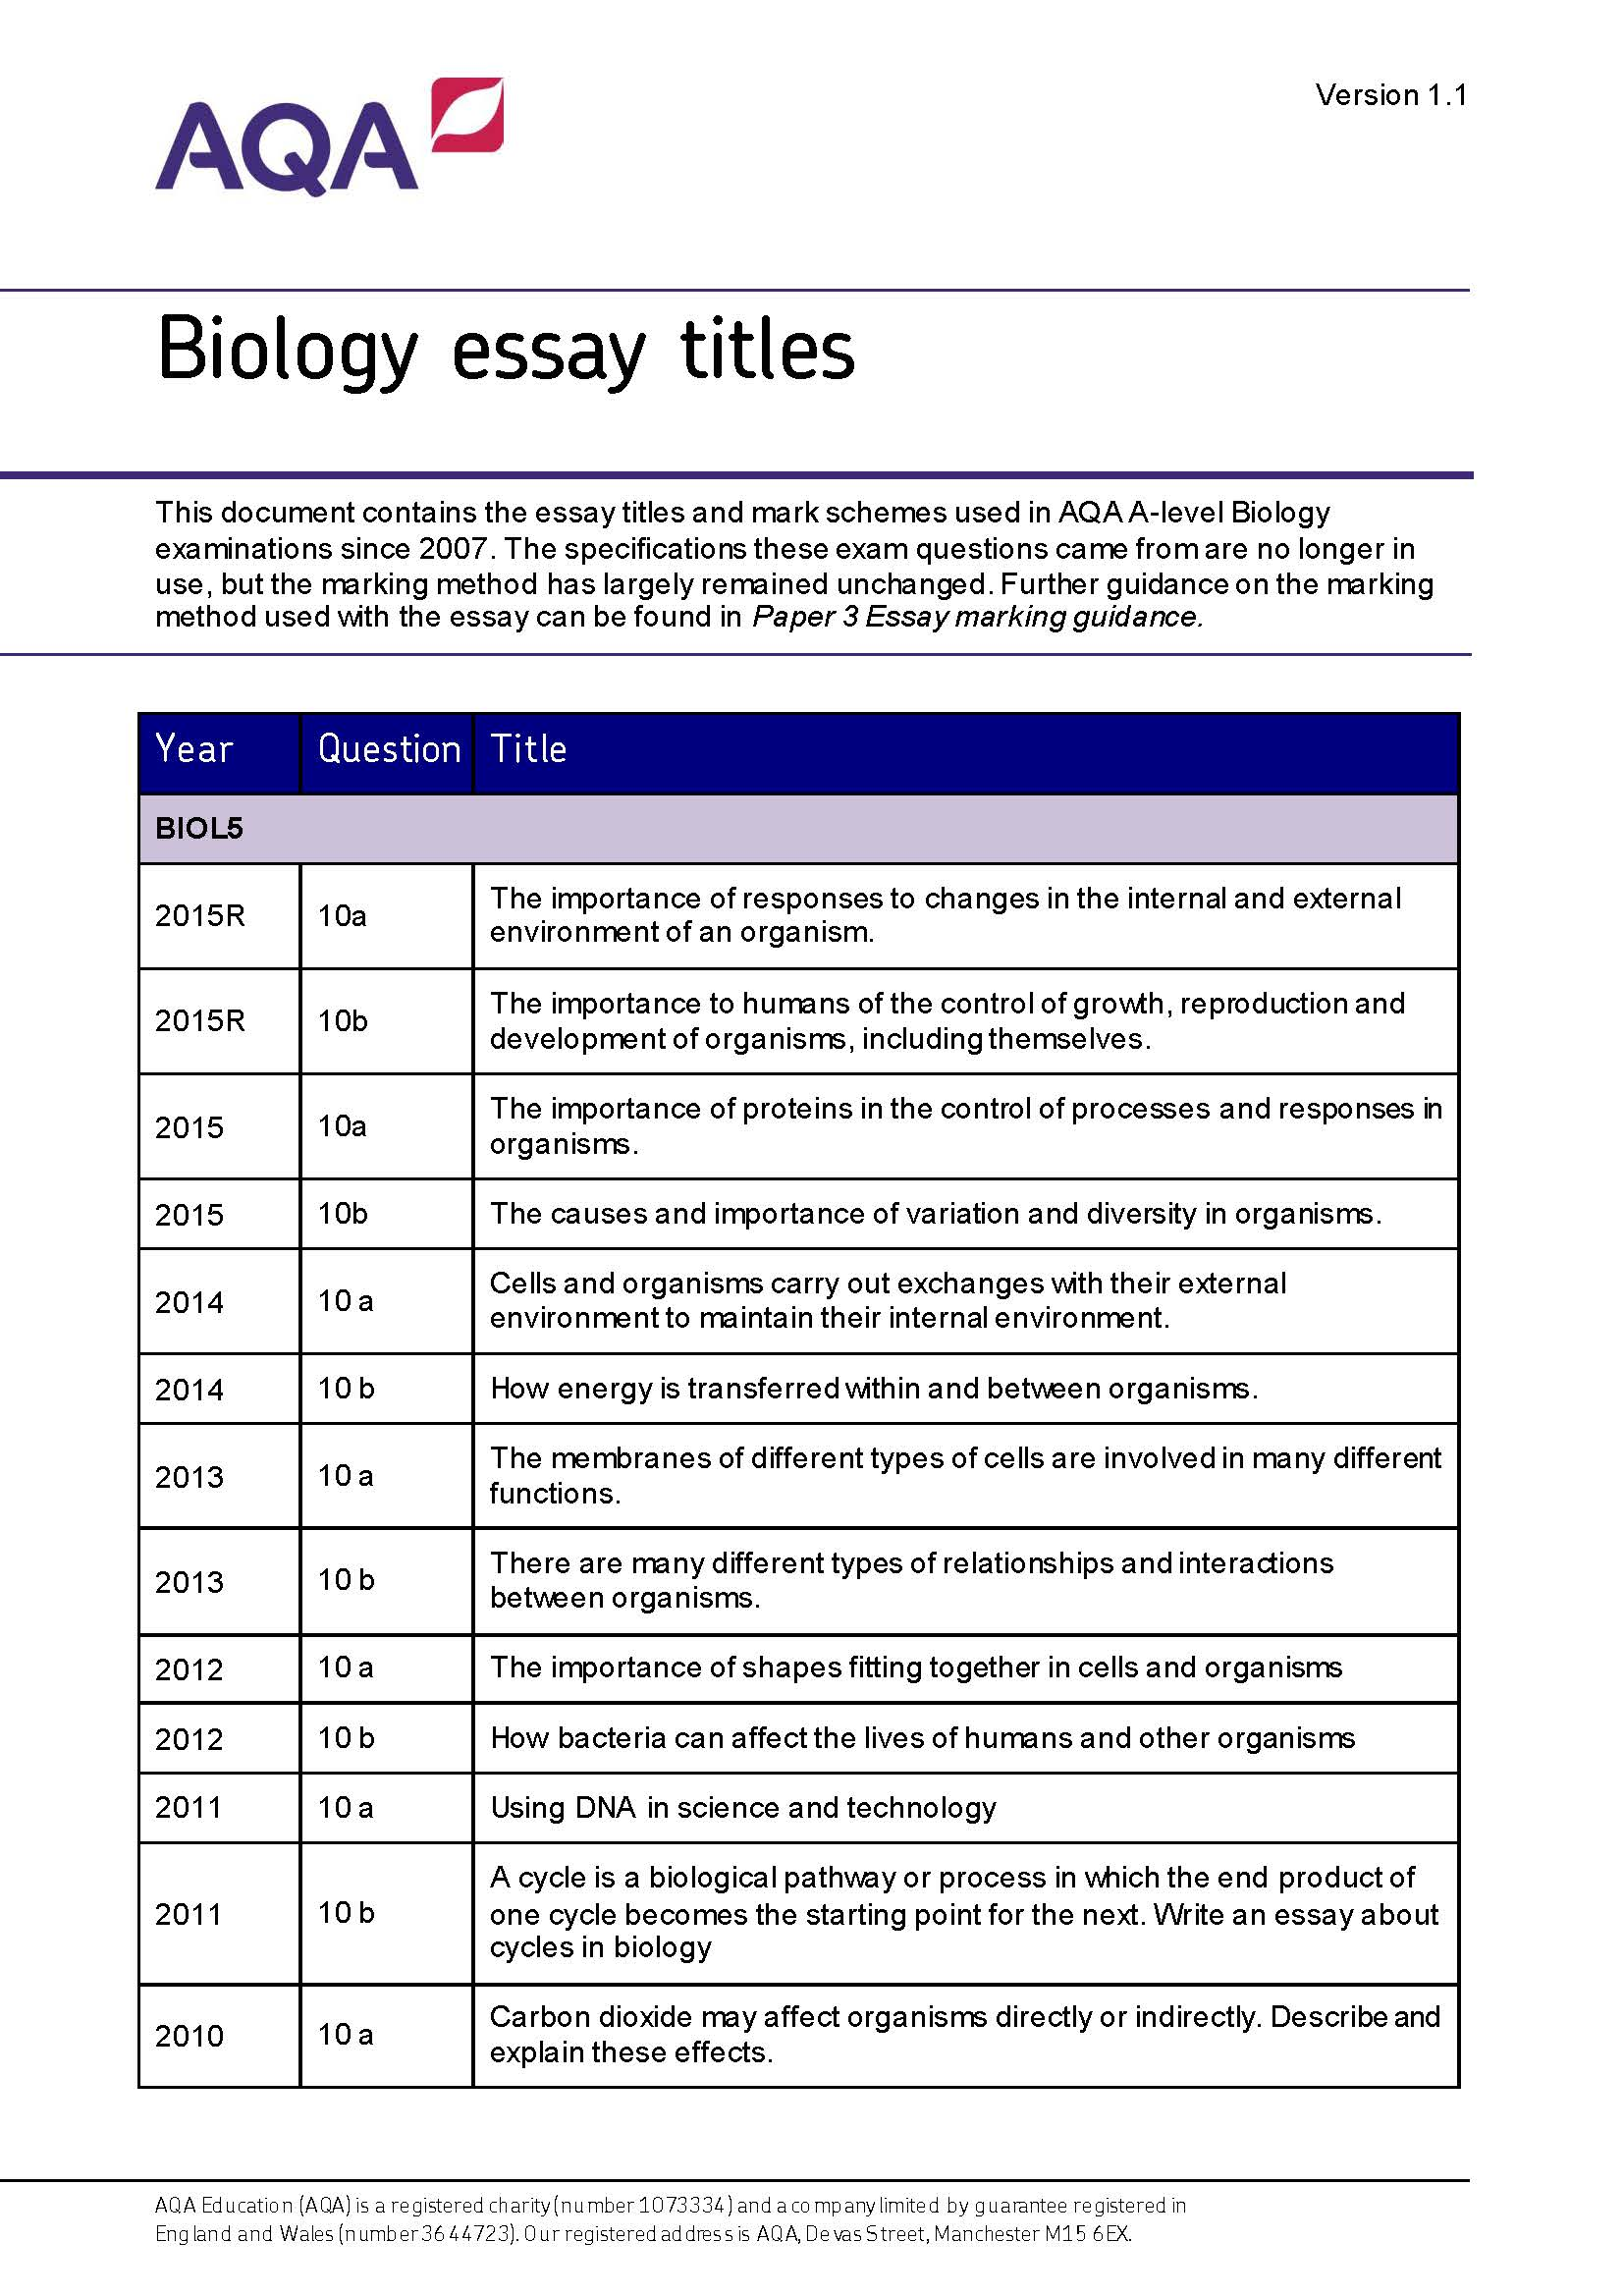 aqa synoptic essay cycles in biology